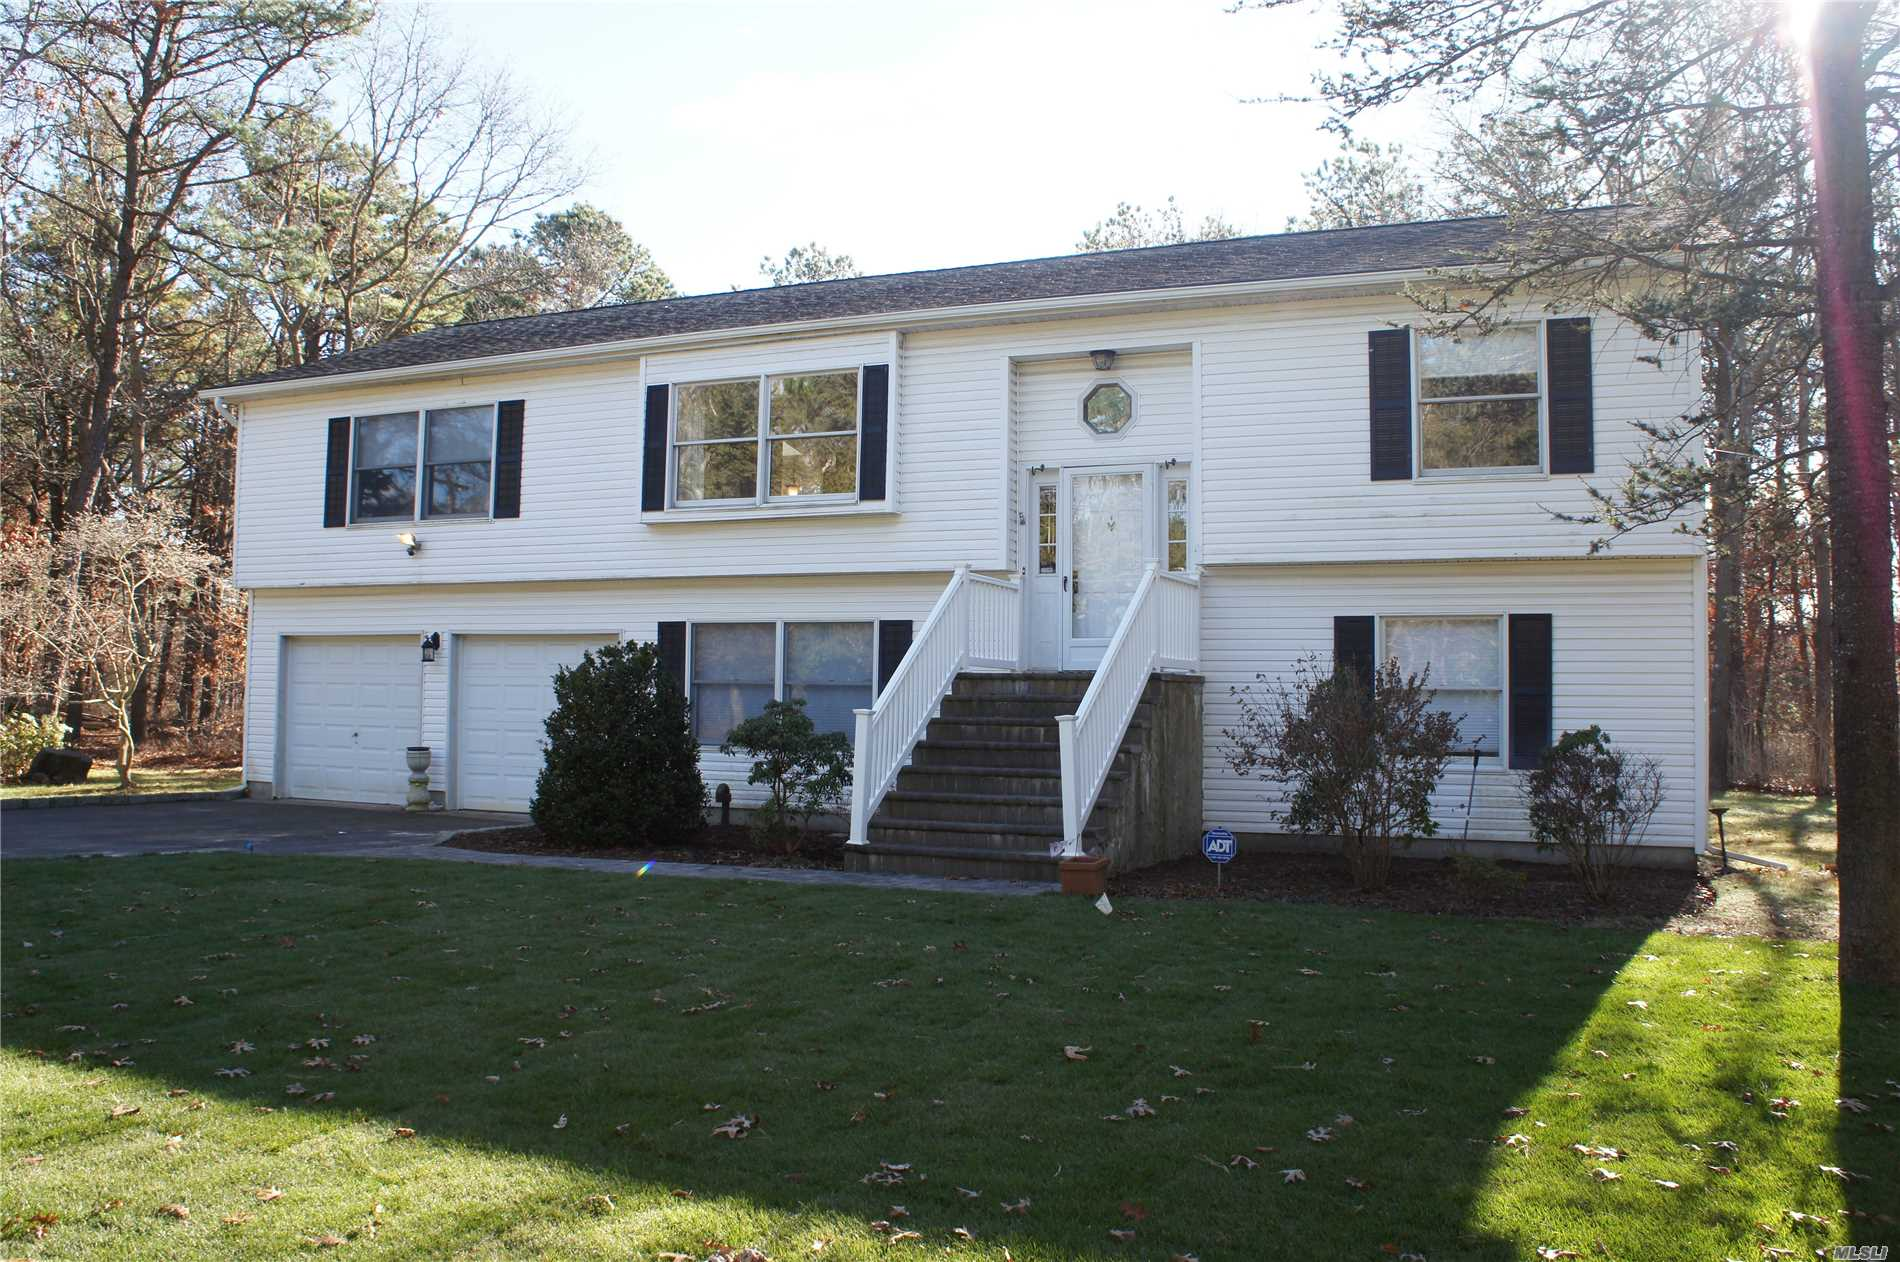 Great House In The Heart Of Manorville On Beautiful 1.3 Acre Property. Features Include: 5 Spacious Bedrooms, 3 Full Bathrooms, Lots Of Room For That Large Or Extended Family. Hardwood Floors Upstairs, Woodburning Stove In Family Room, Radiant Heat In Master Bath, New Roof, New Gas Heating System. Close To Shopping, Highways And More. Call Today.